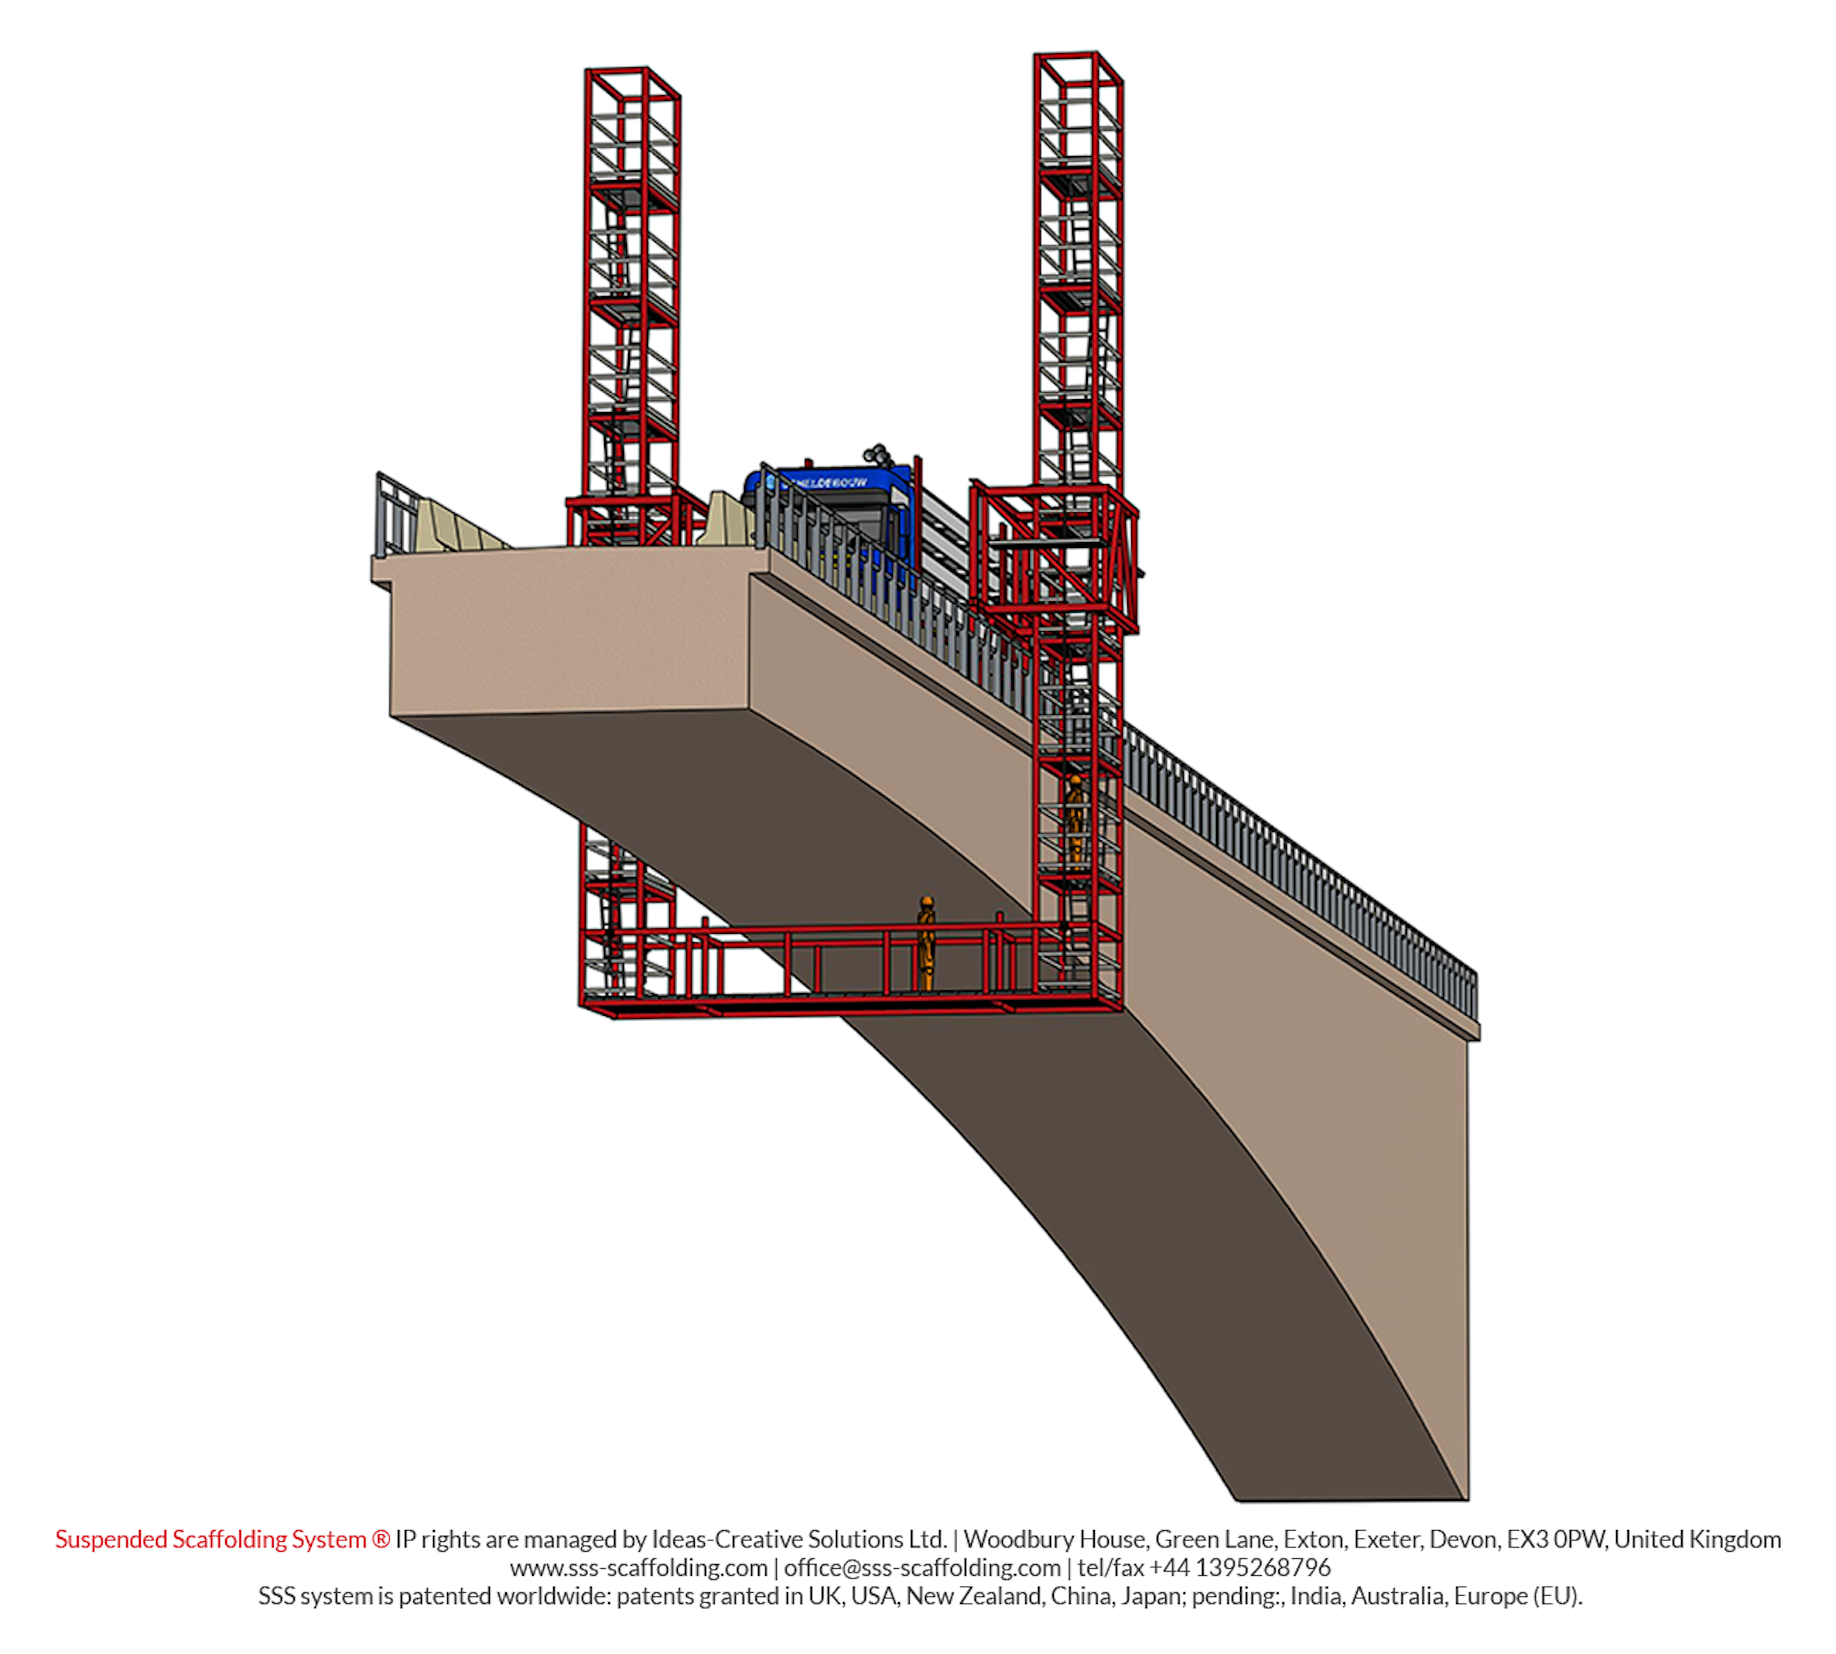 Suspended Decking: Suspended Scaffolding System